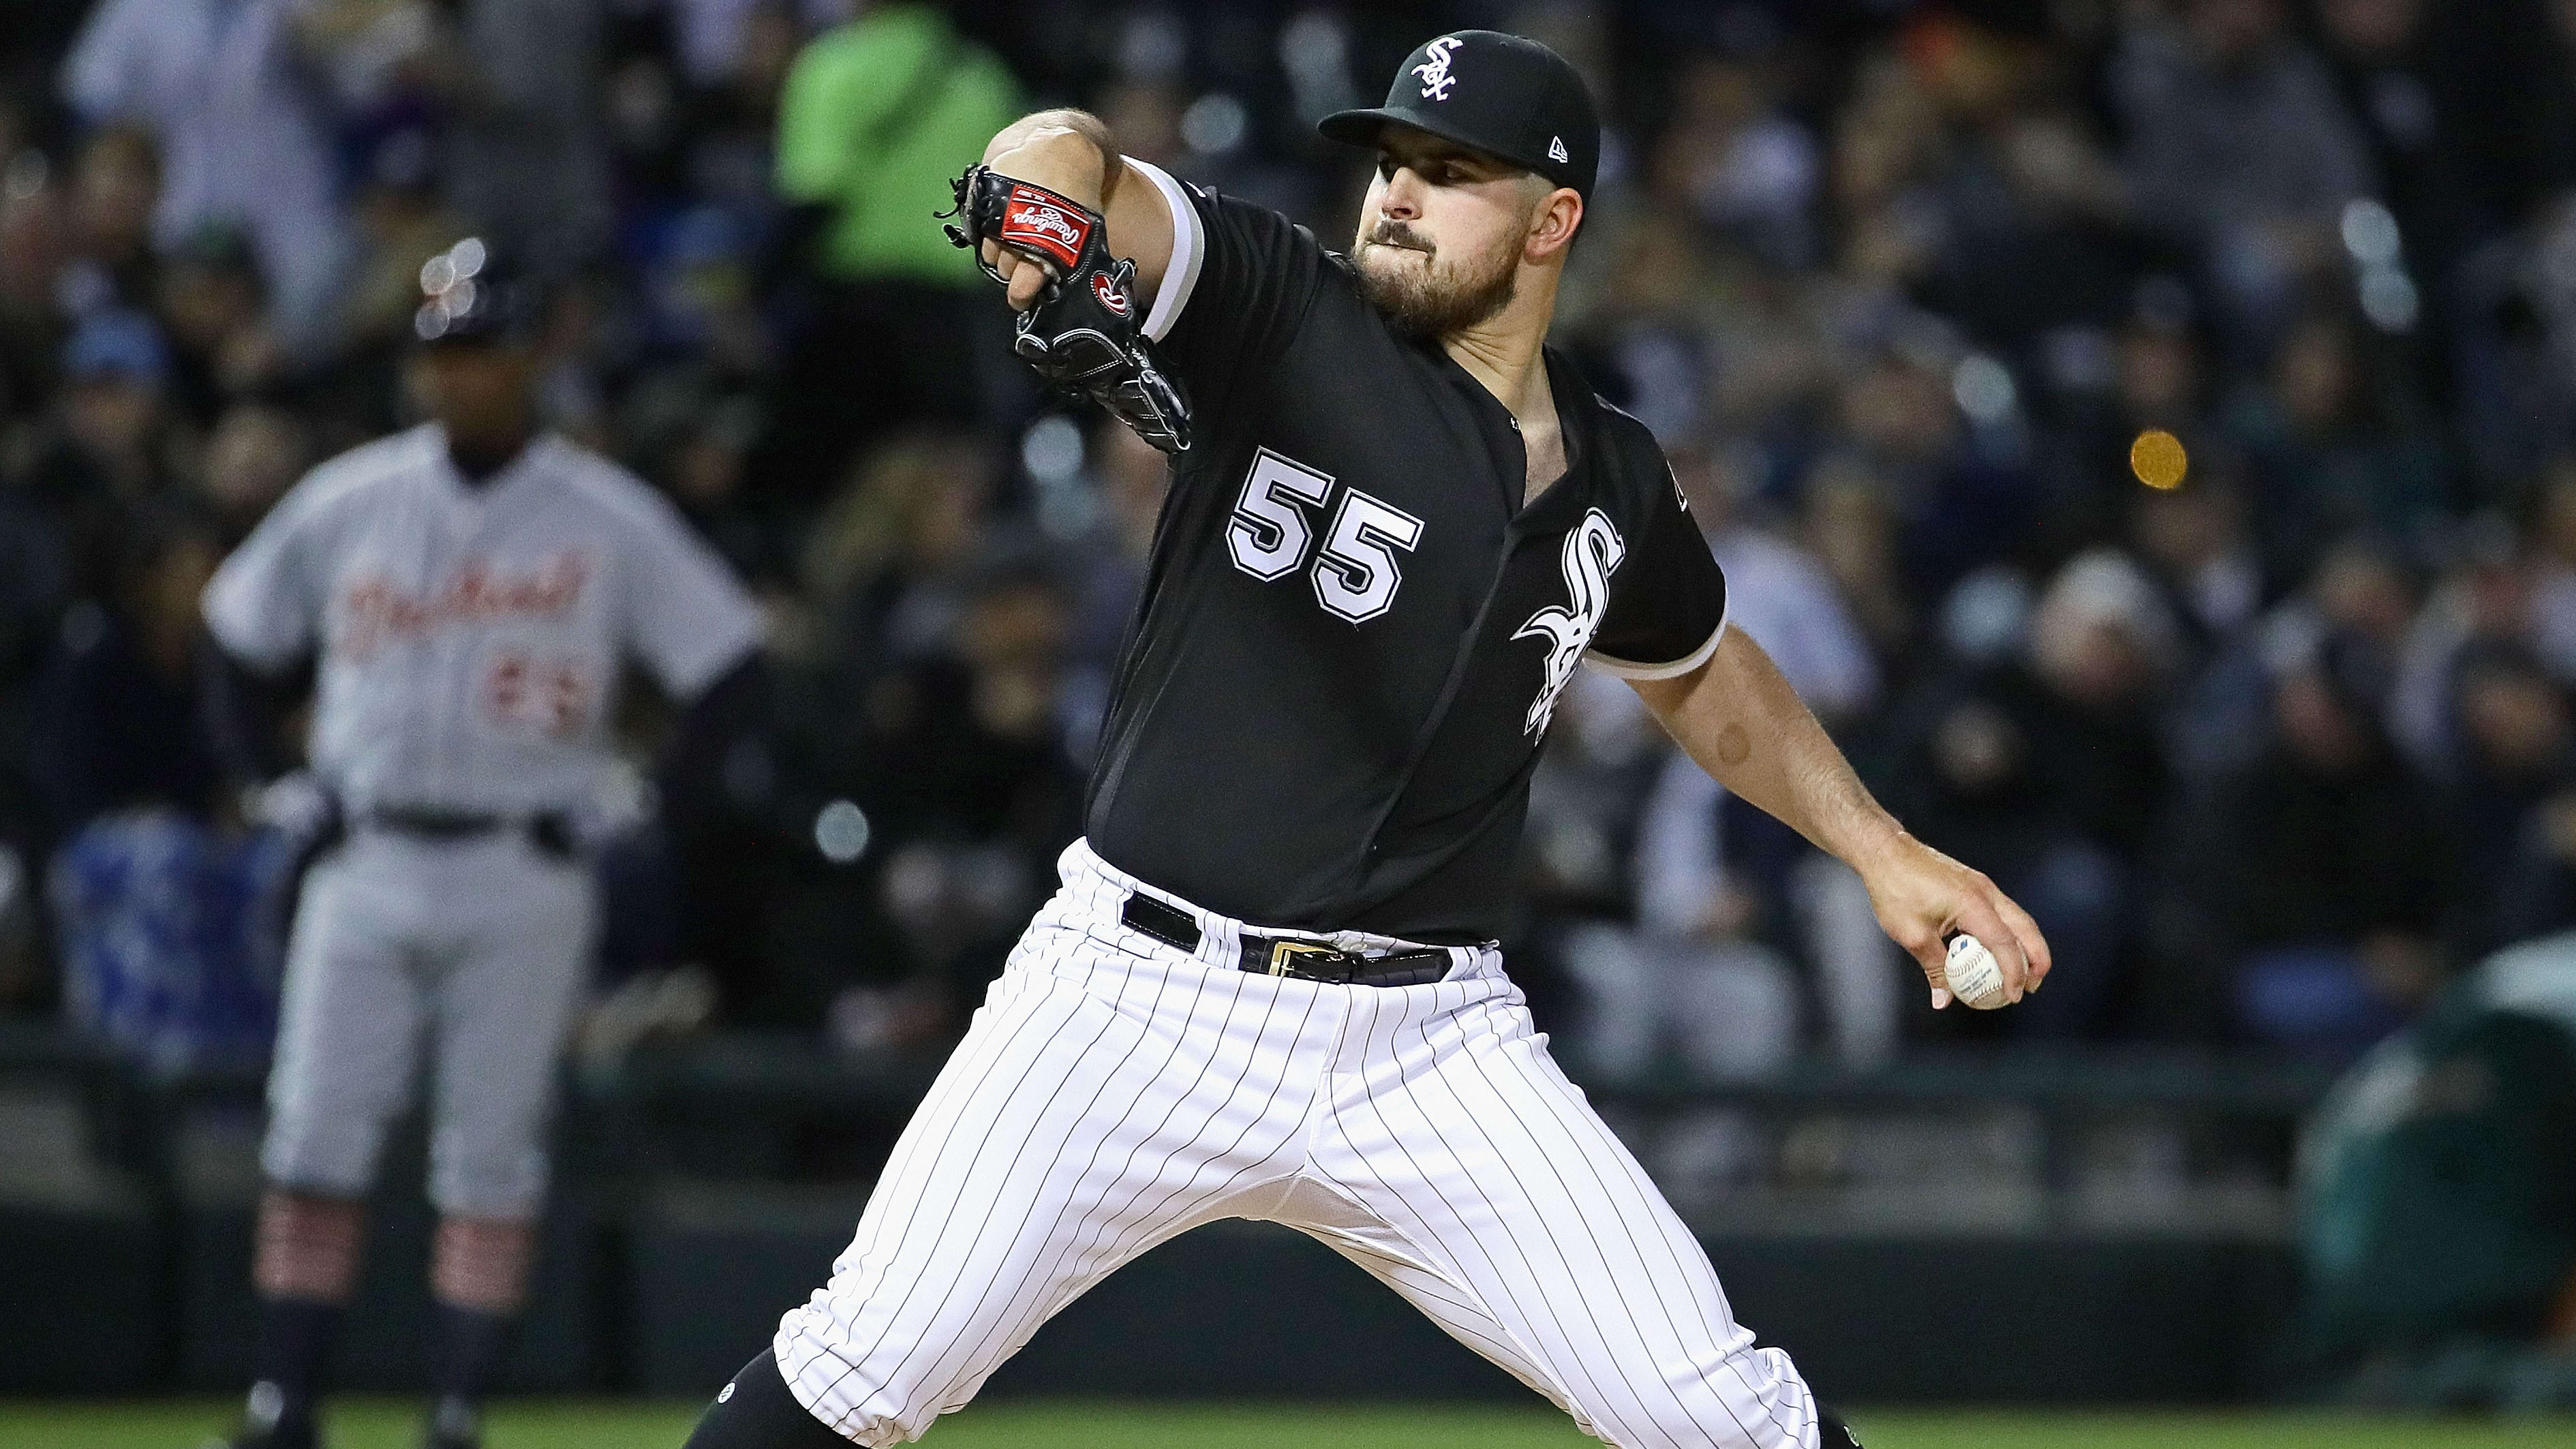 CHICAGO, ILLINOIS - APRIL 26: Starting pitcher Carlos Rodon #55 of the Chicago White Sox delivers the ball against the Detroit Tigers at Guaranteed Rate Field on April 26, 2019 in Chicago, Illinois. (Photo by Jonathan Daniel/Getty Images)